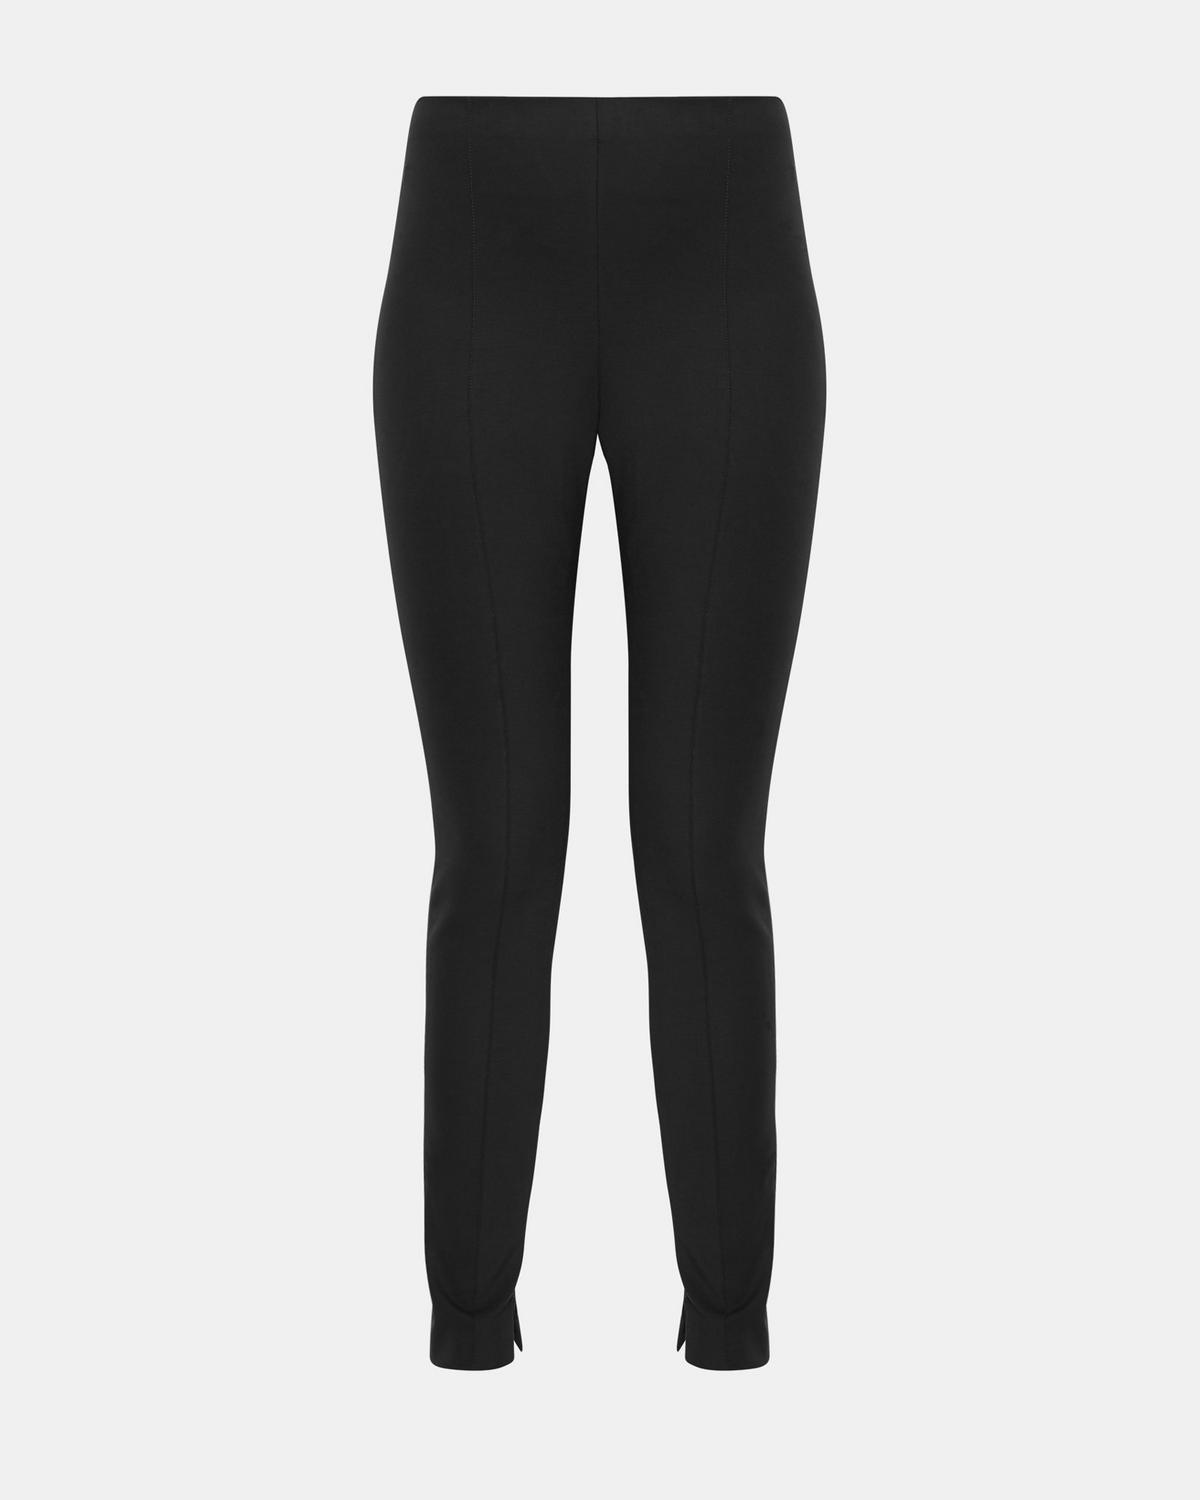 Double Stretch Cotton Skinny Legging